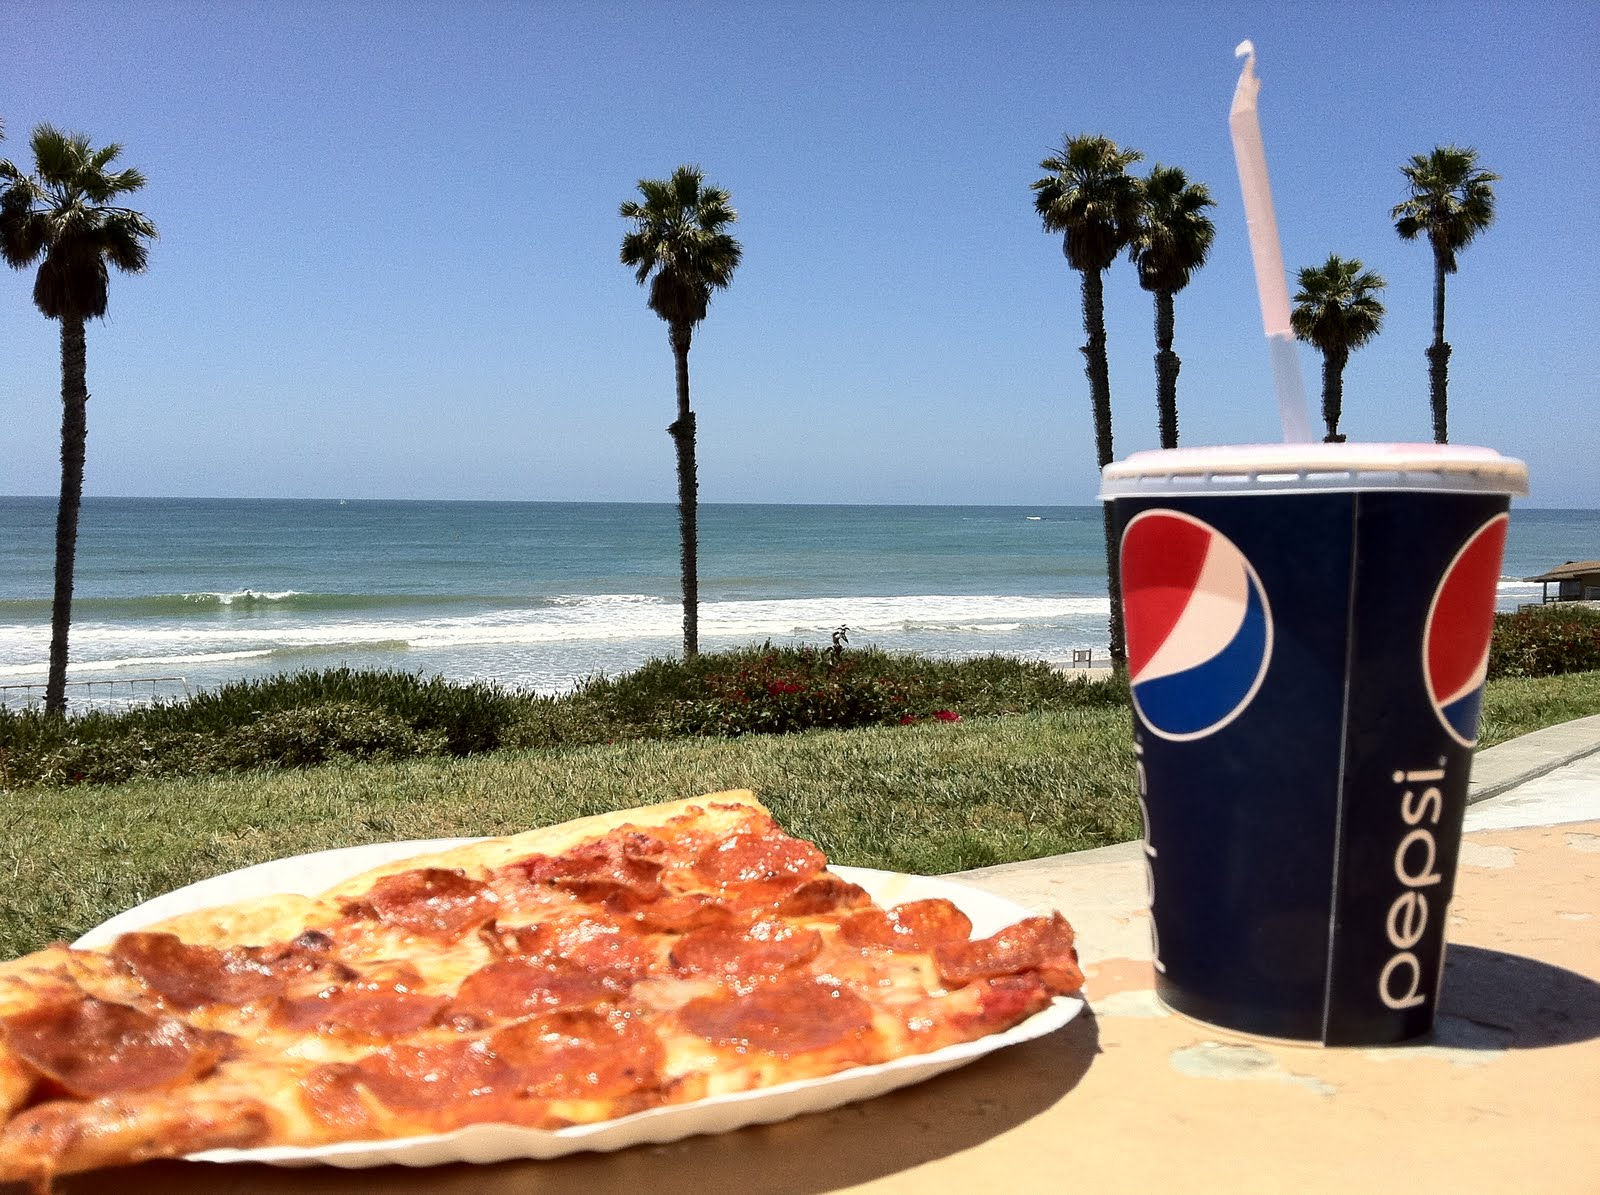 Where to Find the Most Delicious Pizza in San Clemente